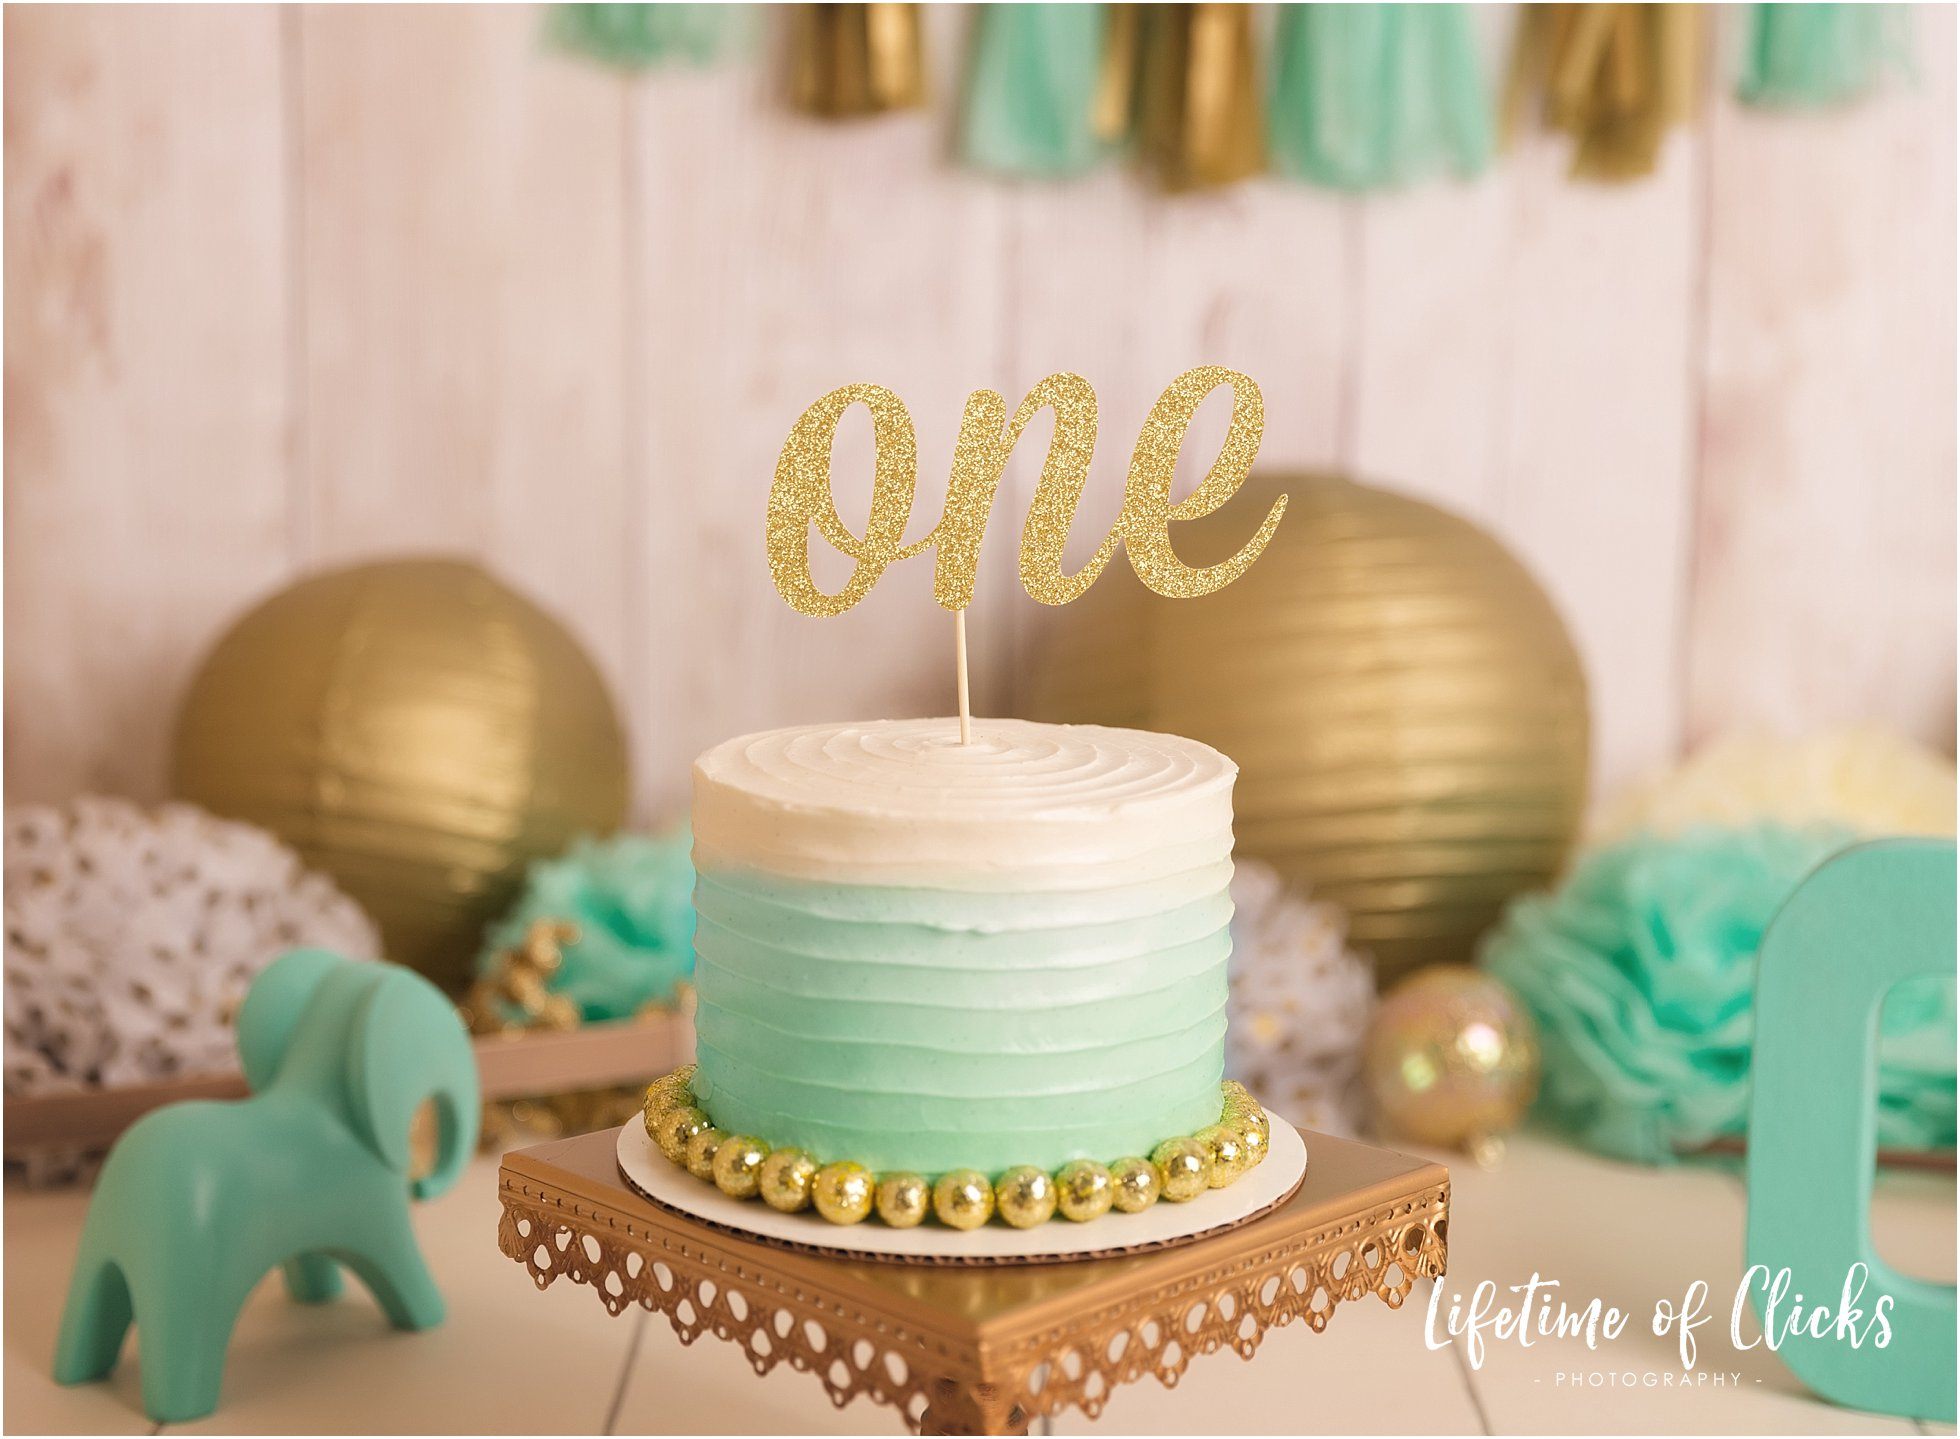 Decorative cake for cake smash session in green and gold